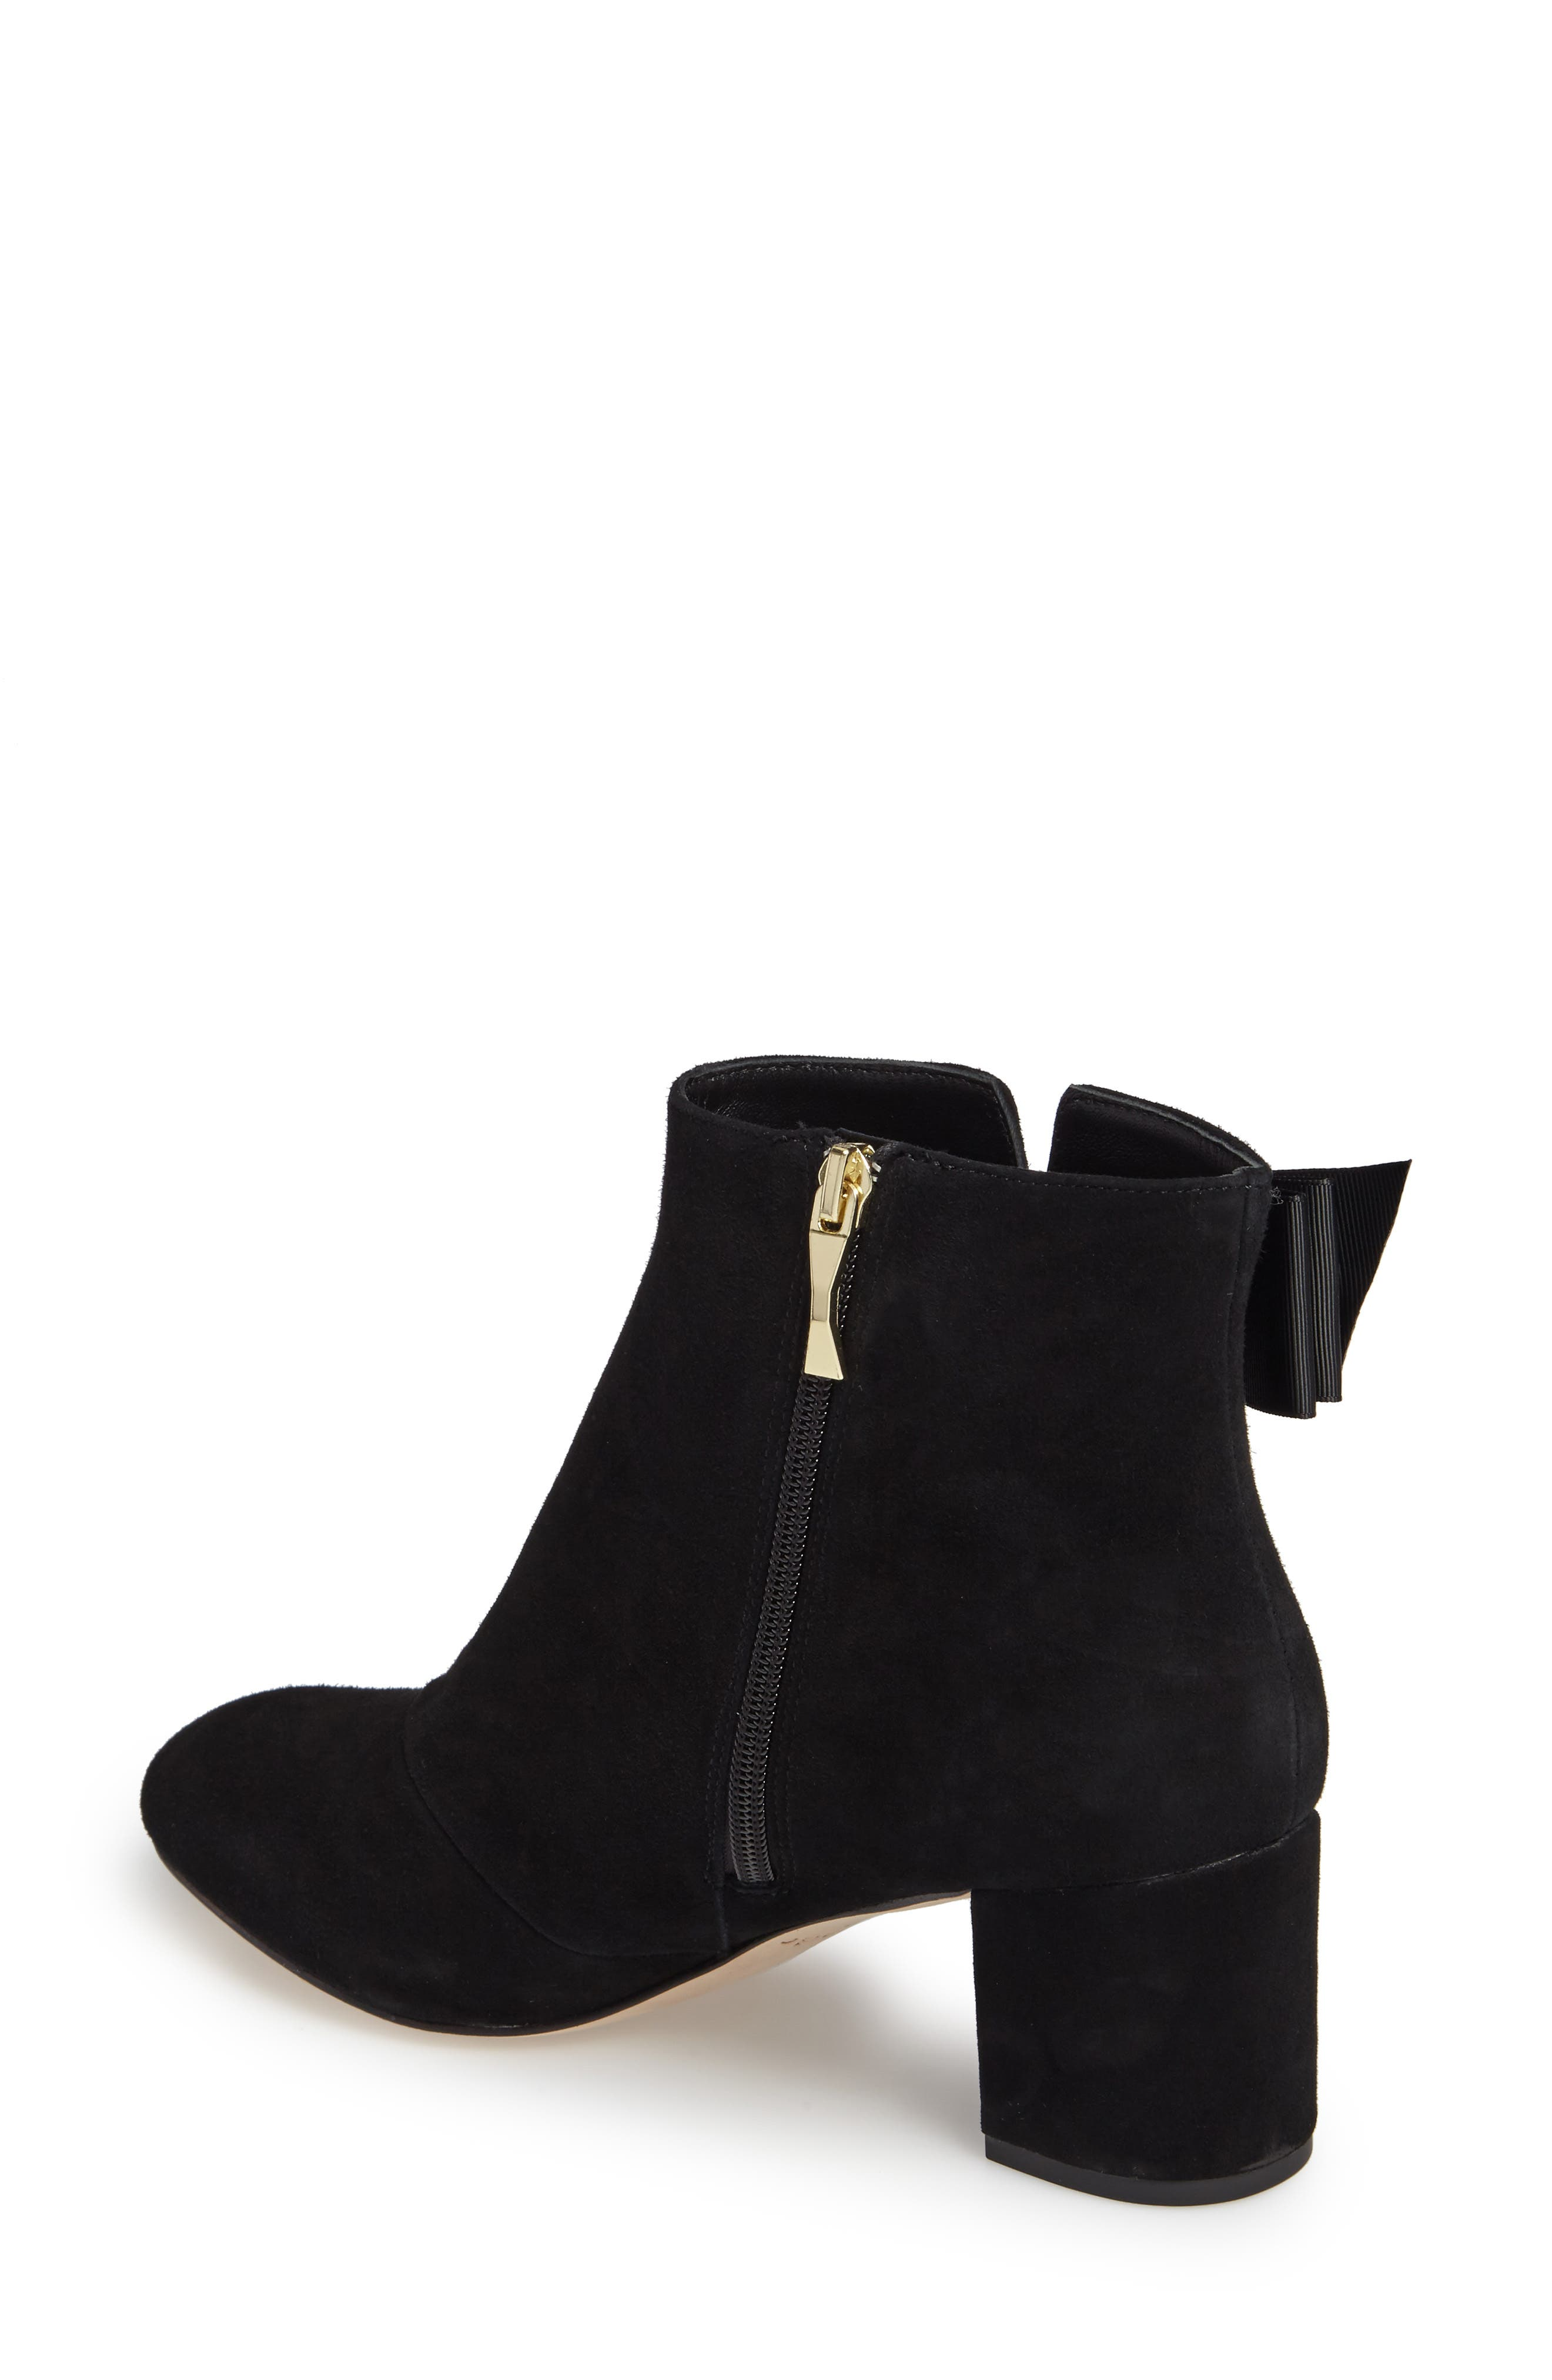 langley bow bootie,                             Alternate thumbnail 2, color,                             Black